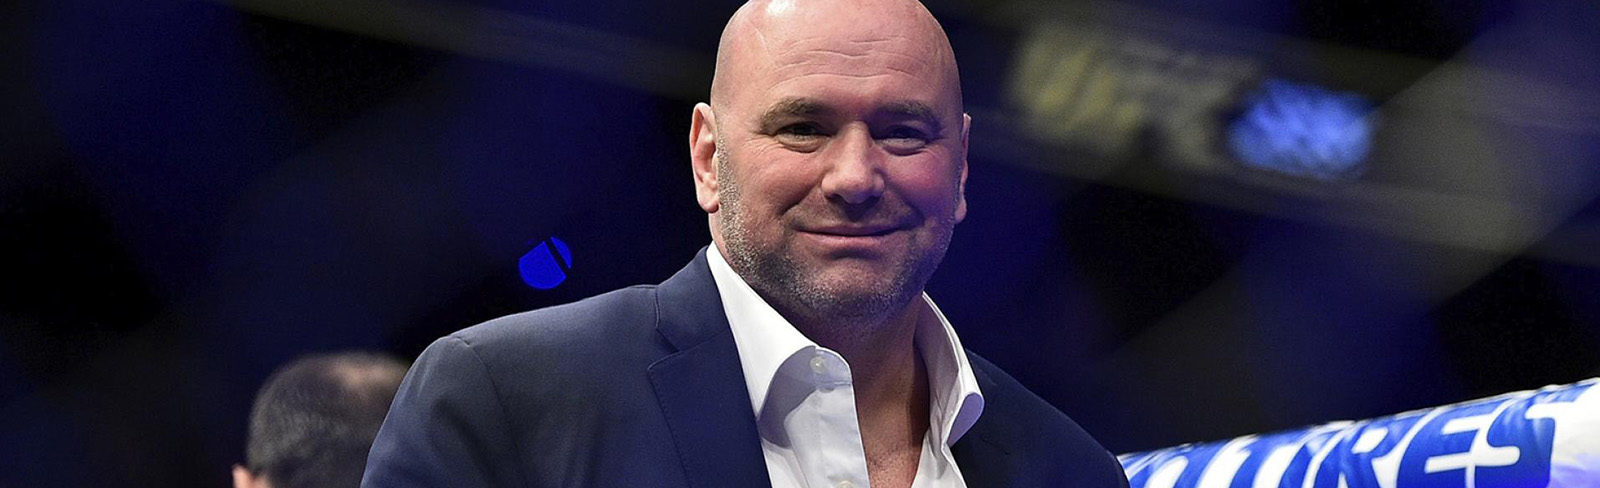 DanaWhite_Featured-1600x488.jpg